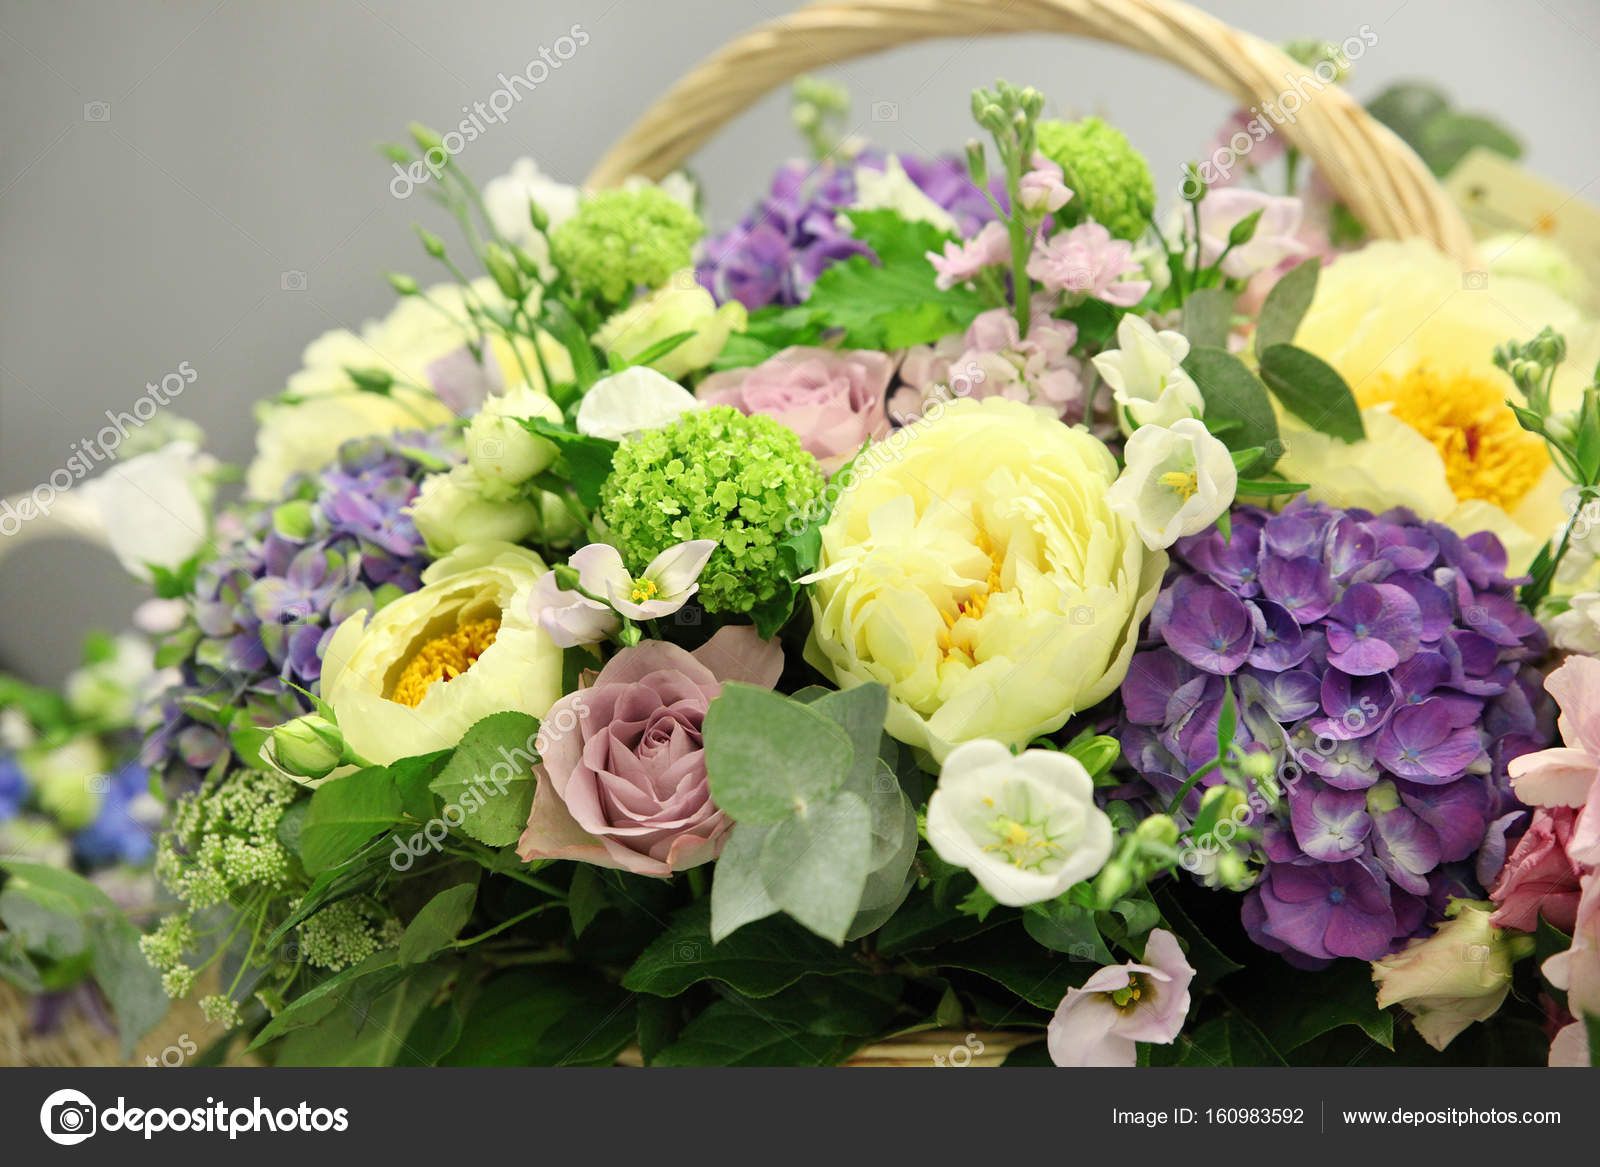 Basket with beautiful flowers stock photo ozina 160983592 basket with beautiful flowers photo by ozina izmirmasajfo